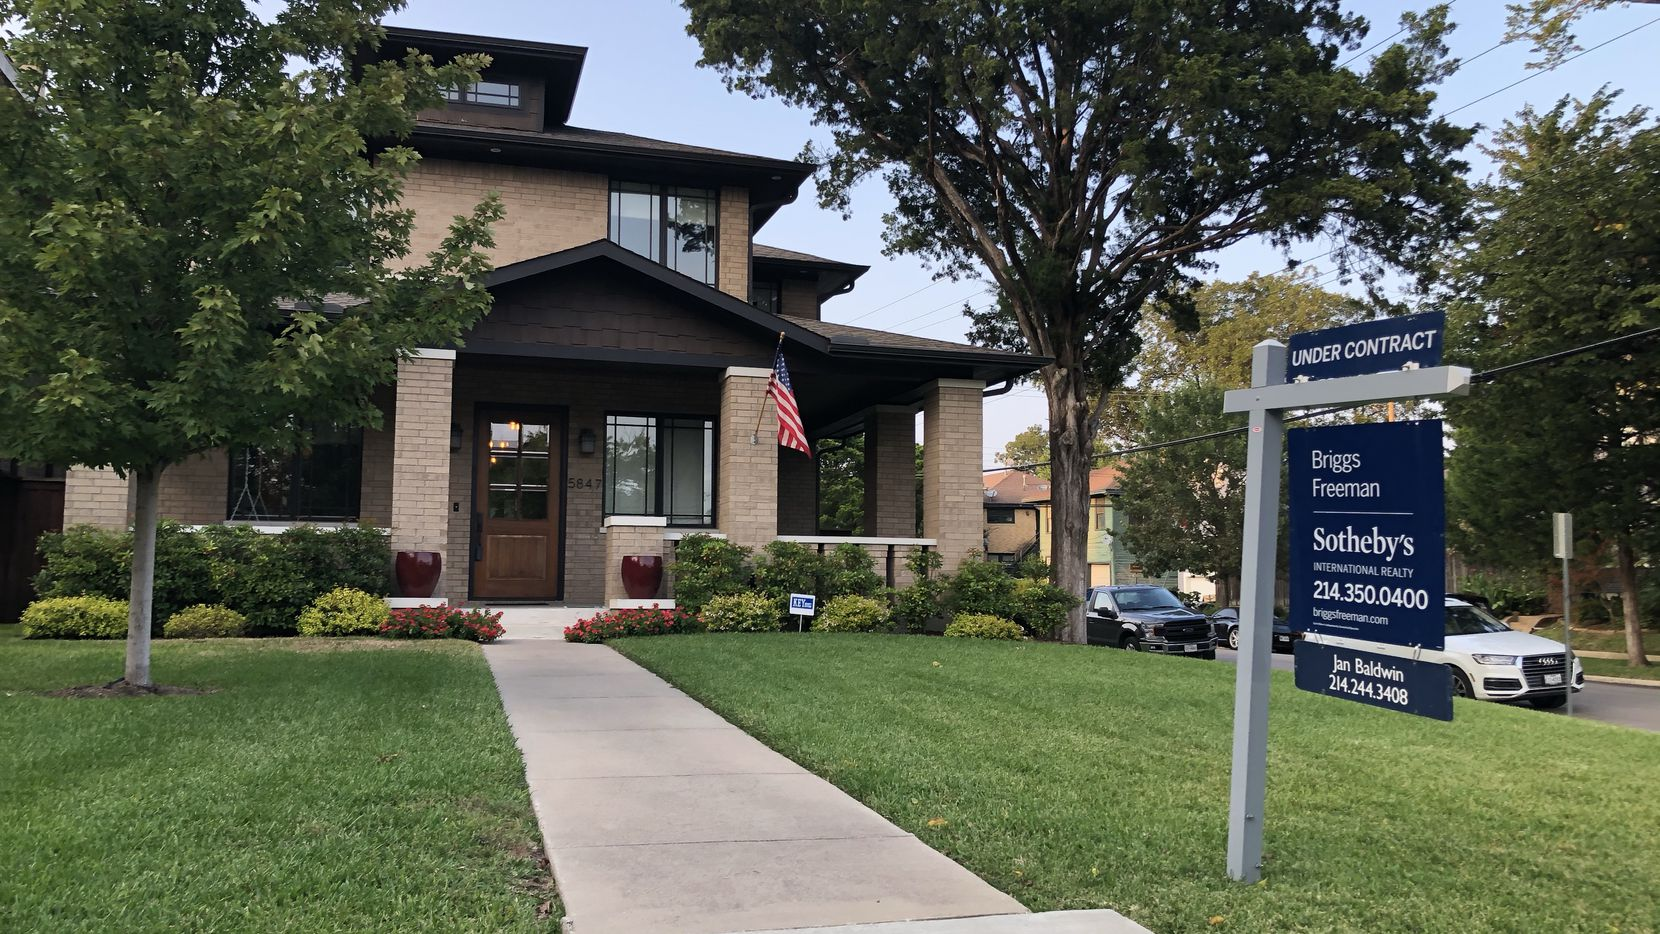 Dallas-area home prices were up 3.2% in July from a year ago, the highest such gain in more than a year in the Case-Shiller index.